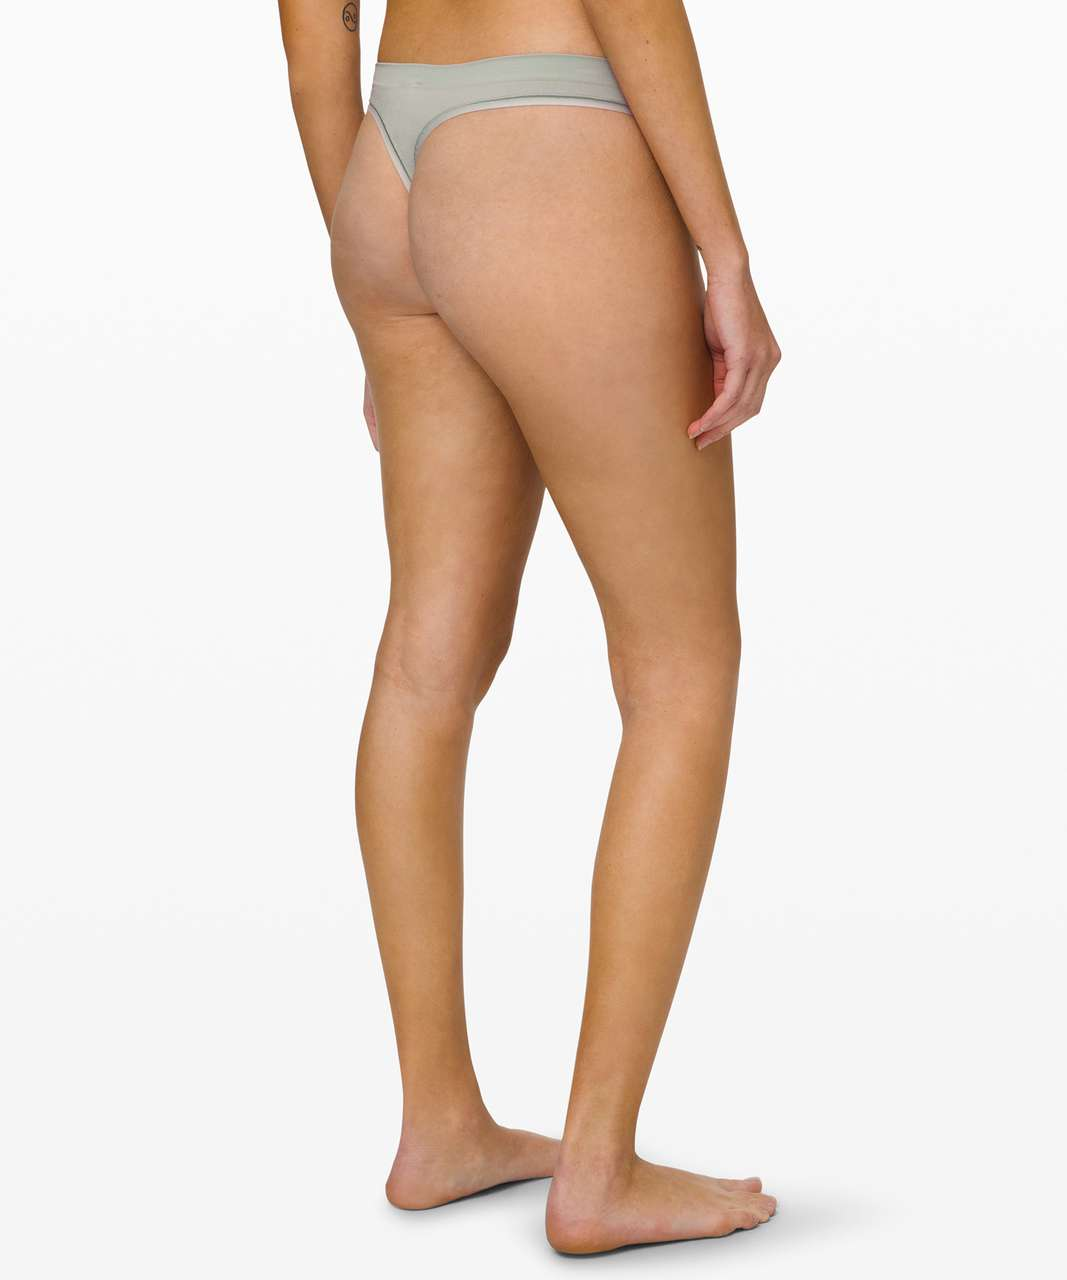 Lululemon Truly Tranquil Thong - Jade Grey